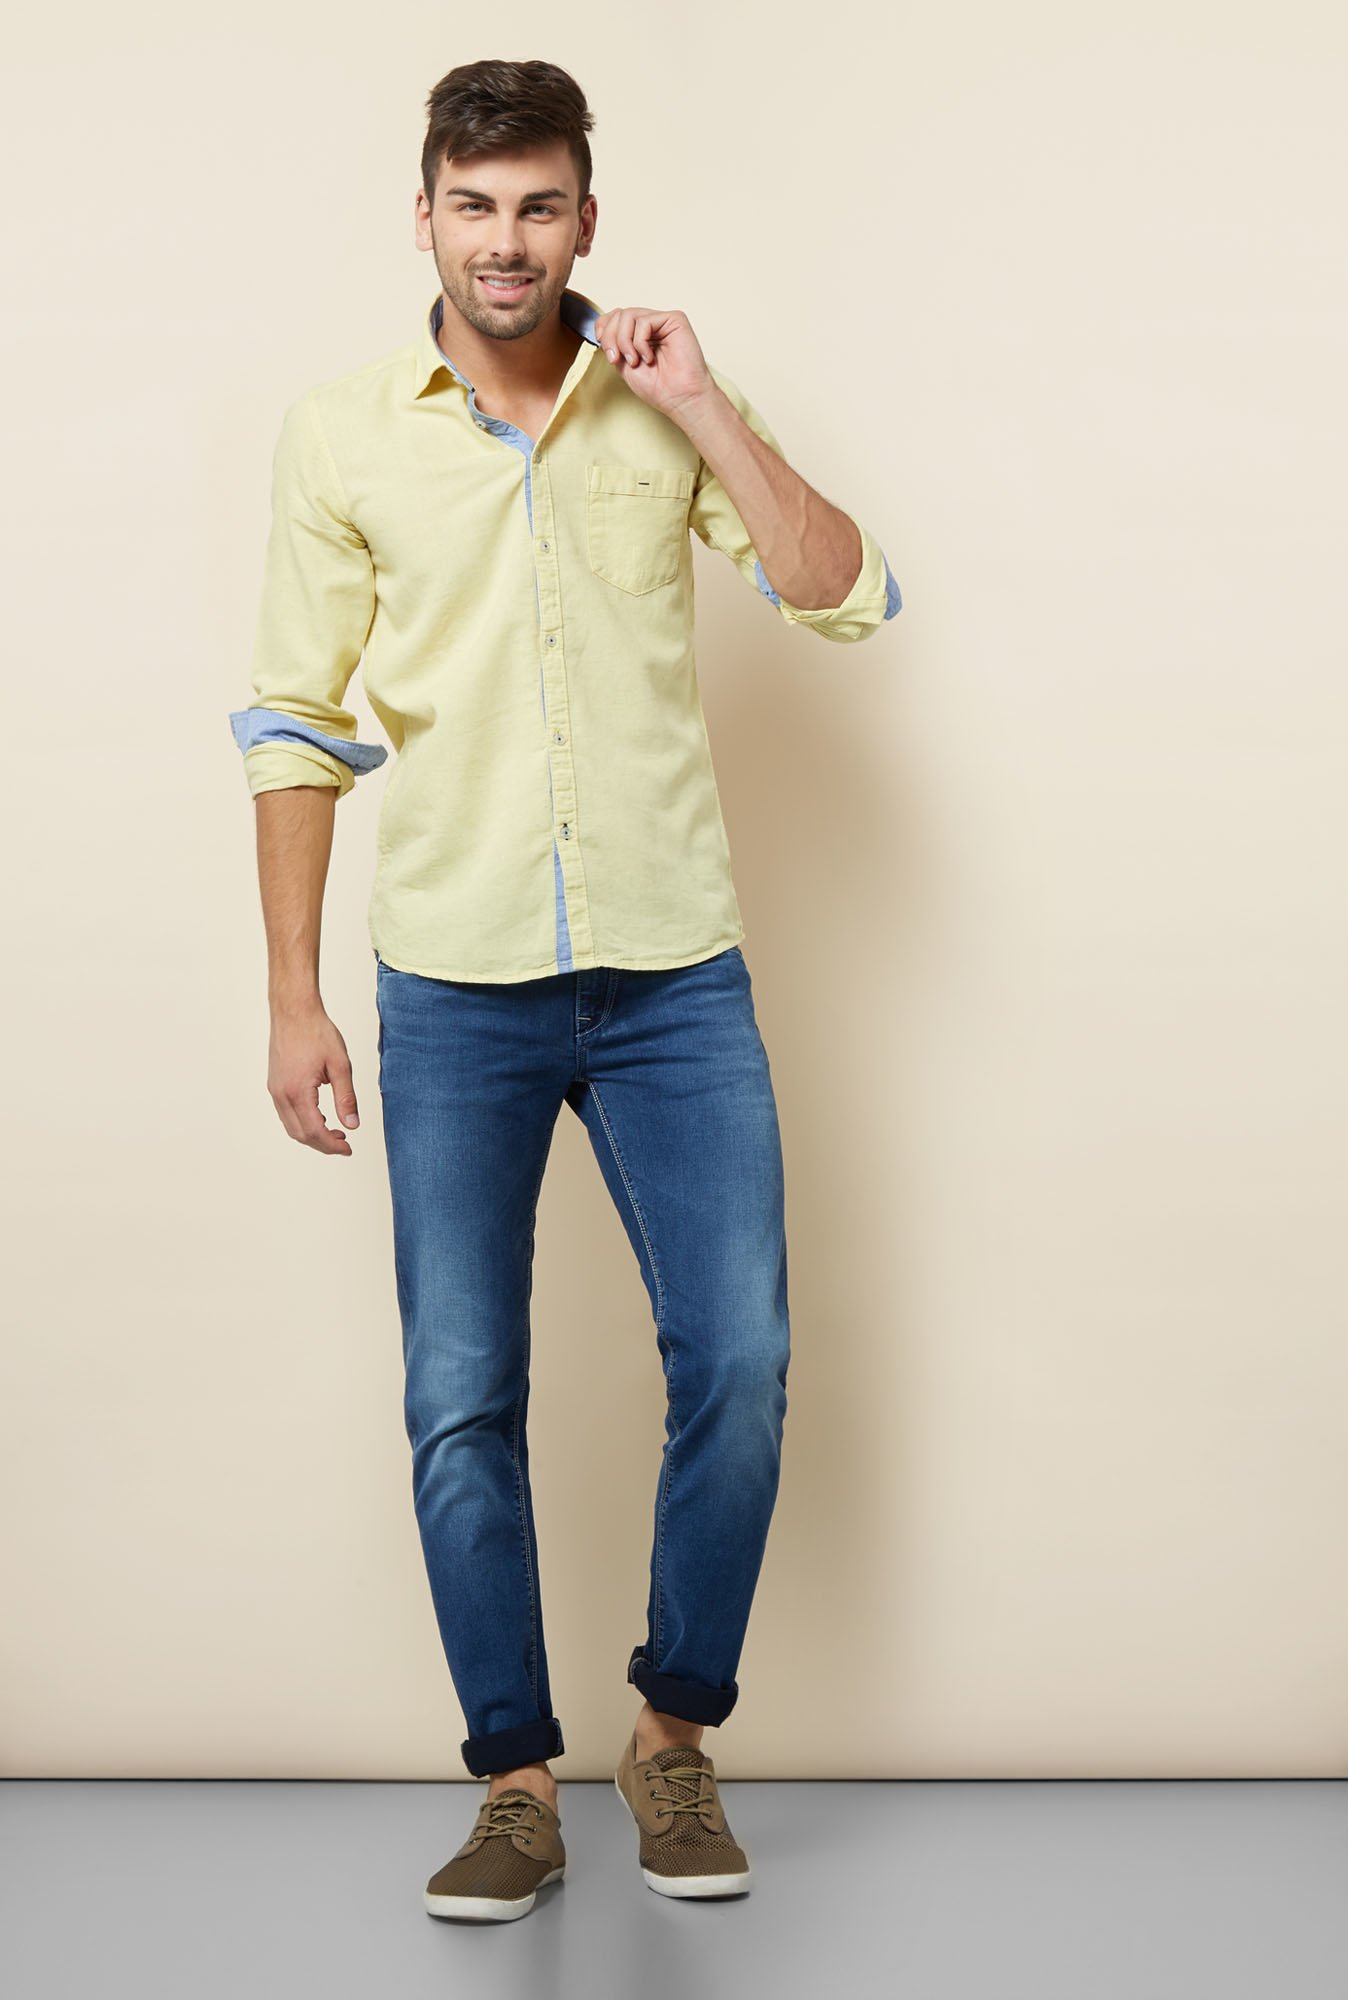 Lawman Yellow Solid Casual Shirt